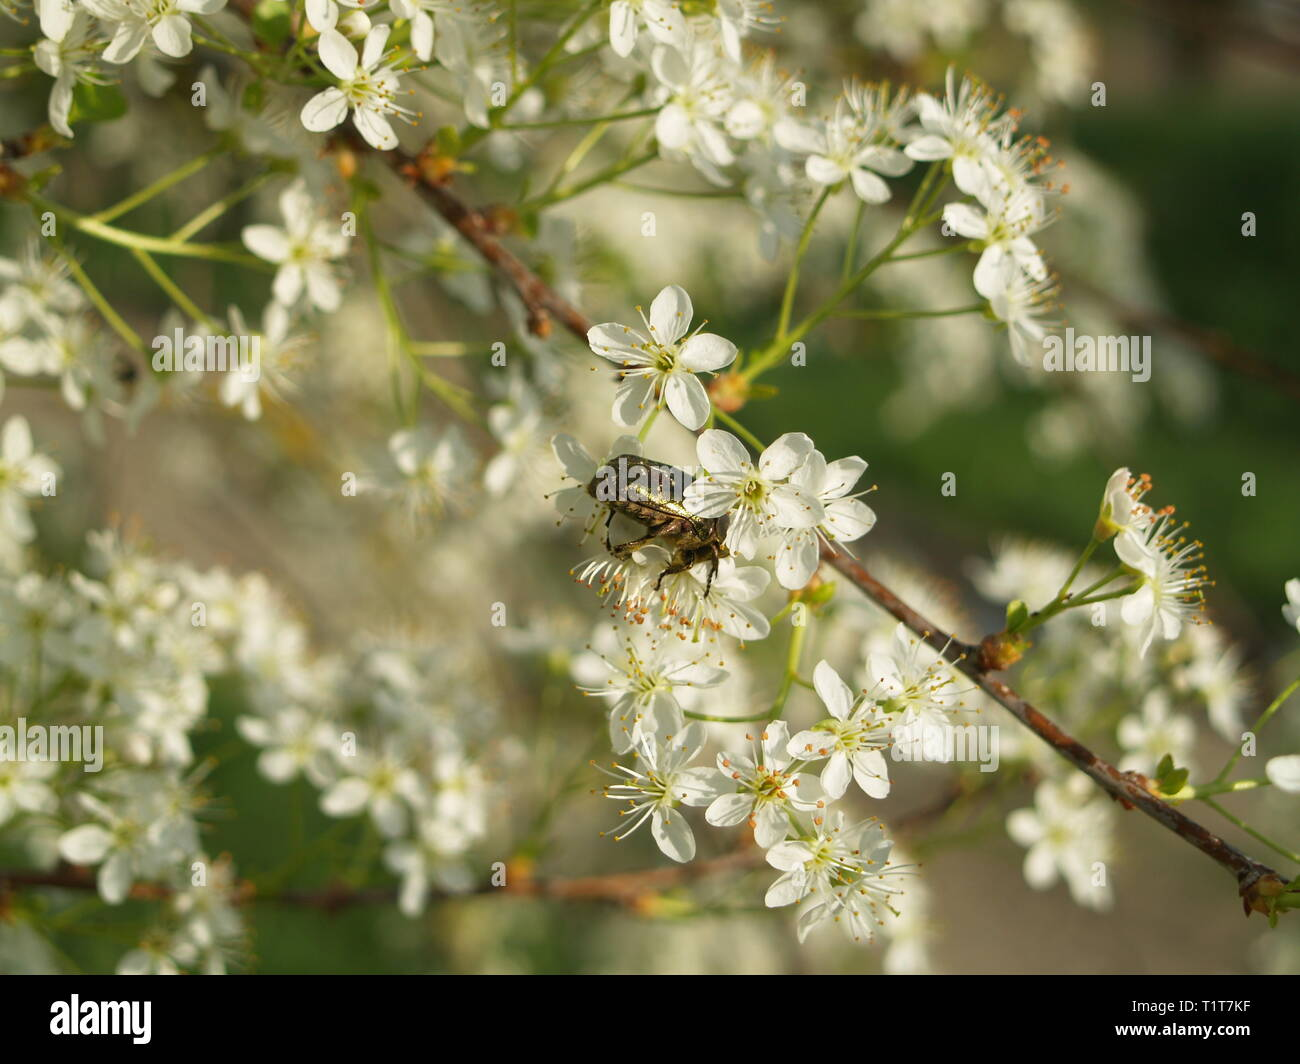 Rose beetle on Spring blossom - Stock Image